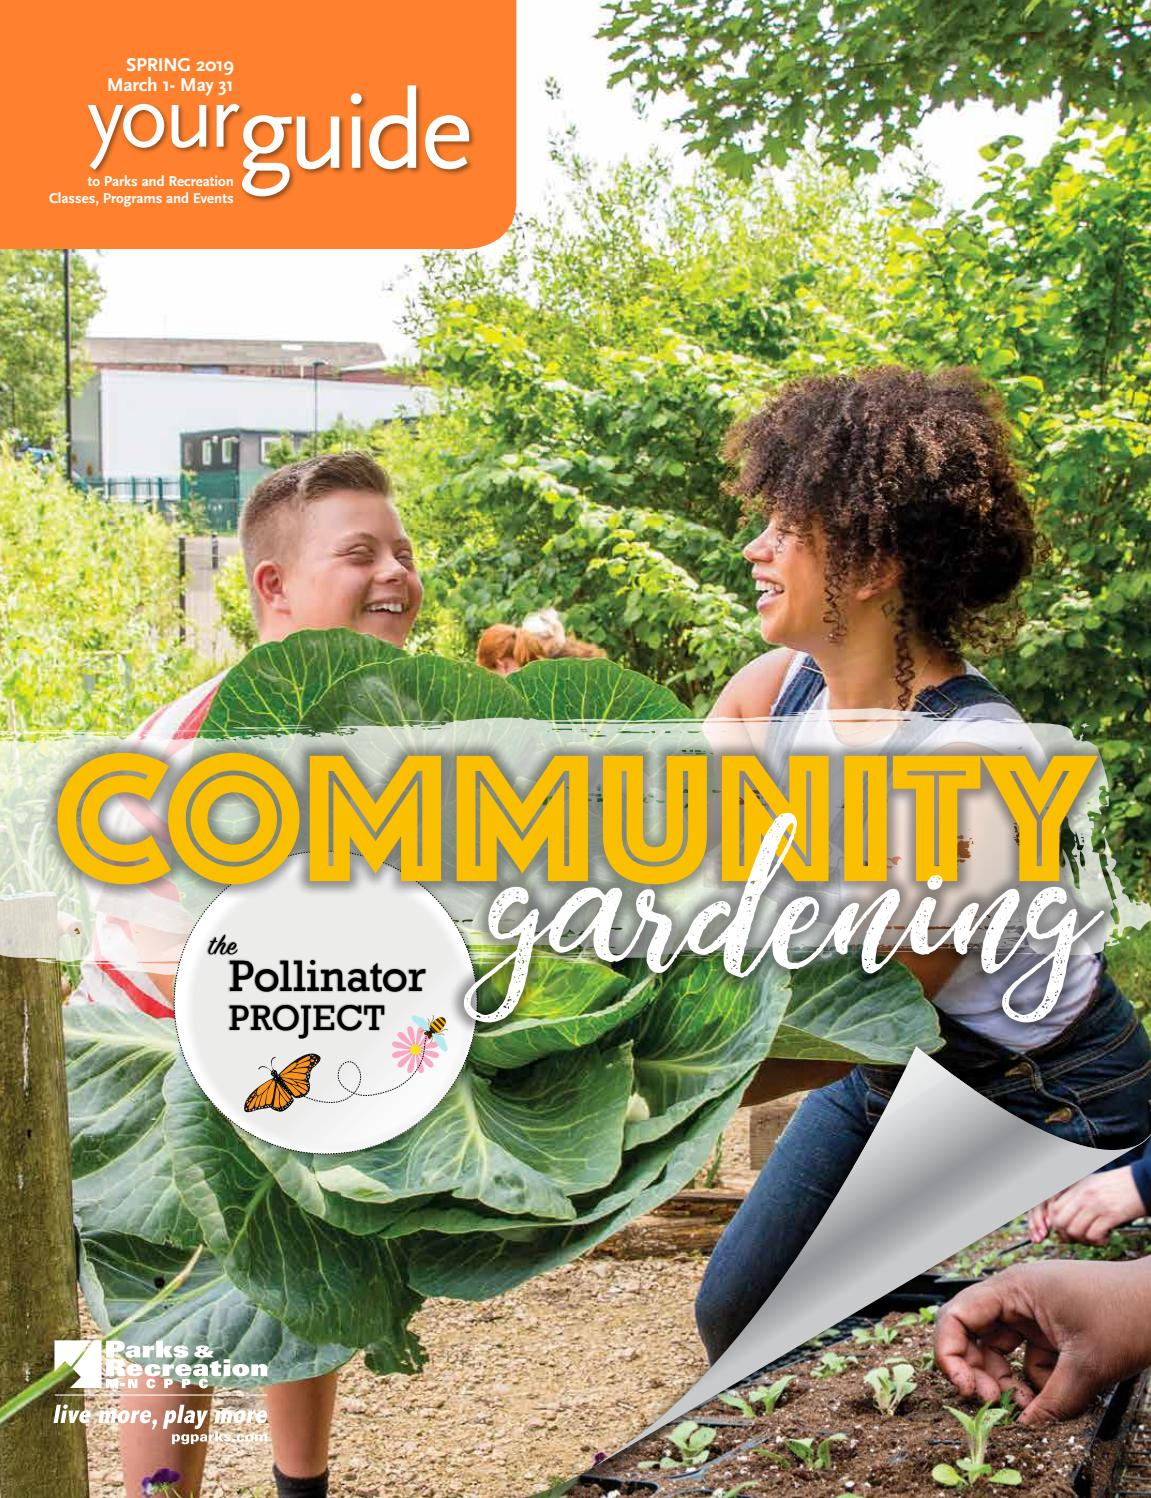 2019 Spring Guide by M-NCPPC, Department of Parks